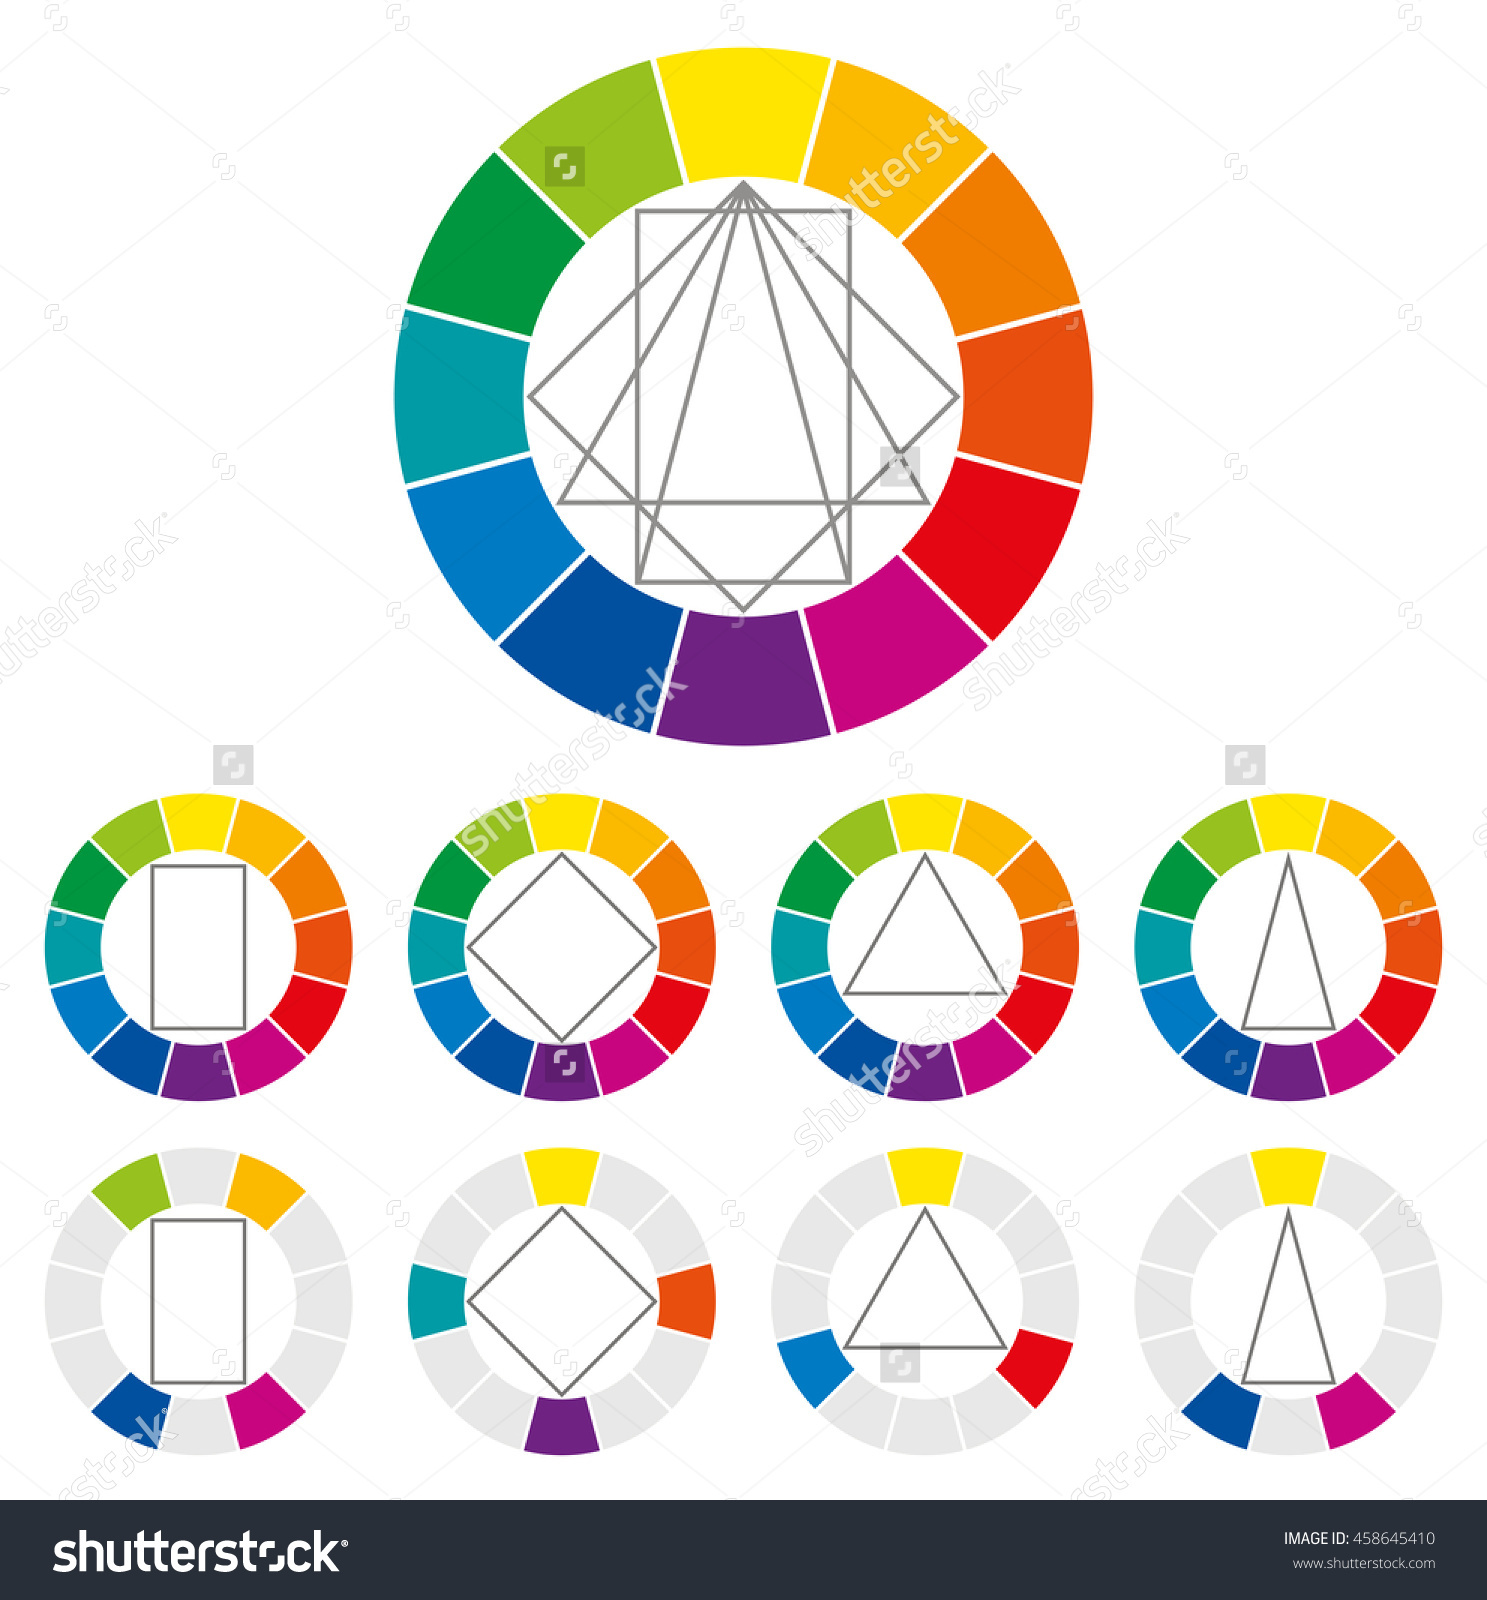 Color Wheel Four Different Geometric Forms Stock Vector 458645410.